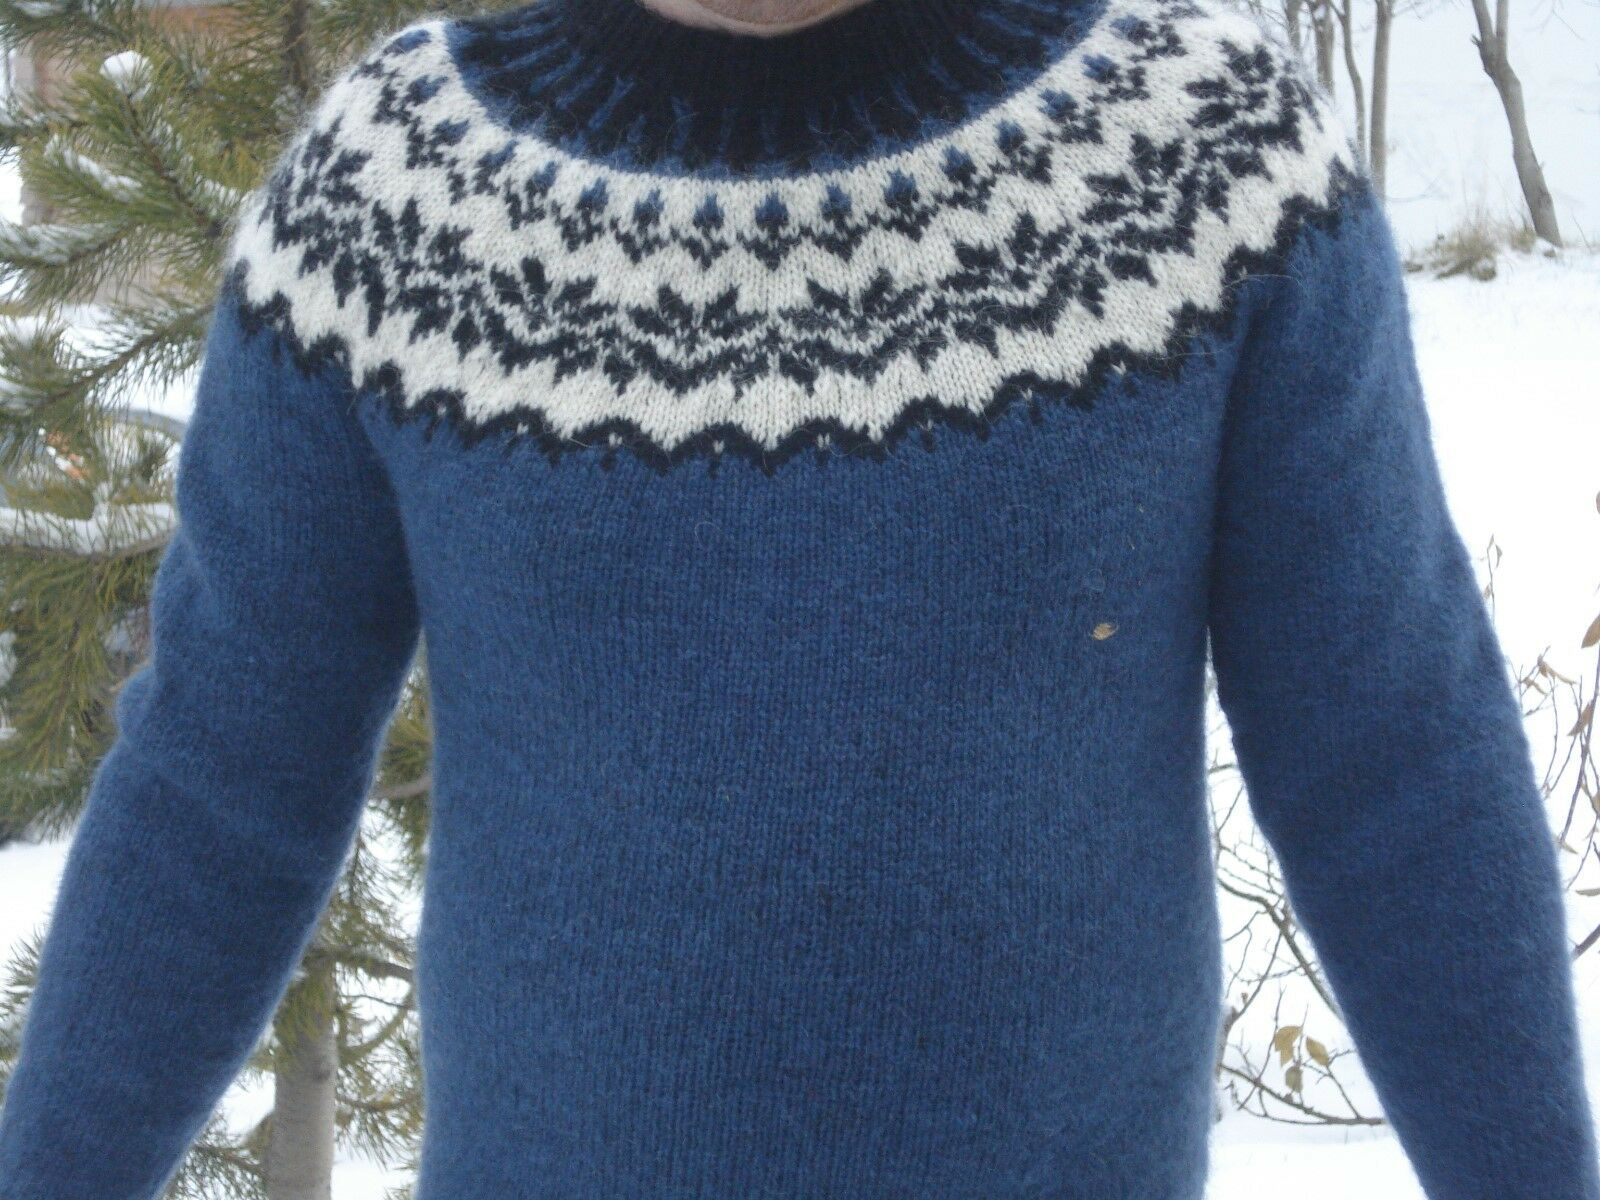 Icelandic wool sweater for man/woman souvenirs handmade